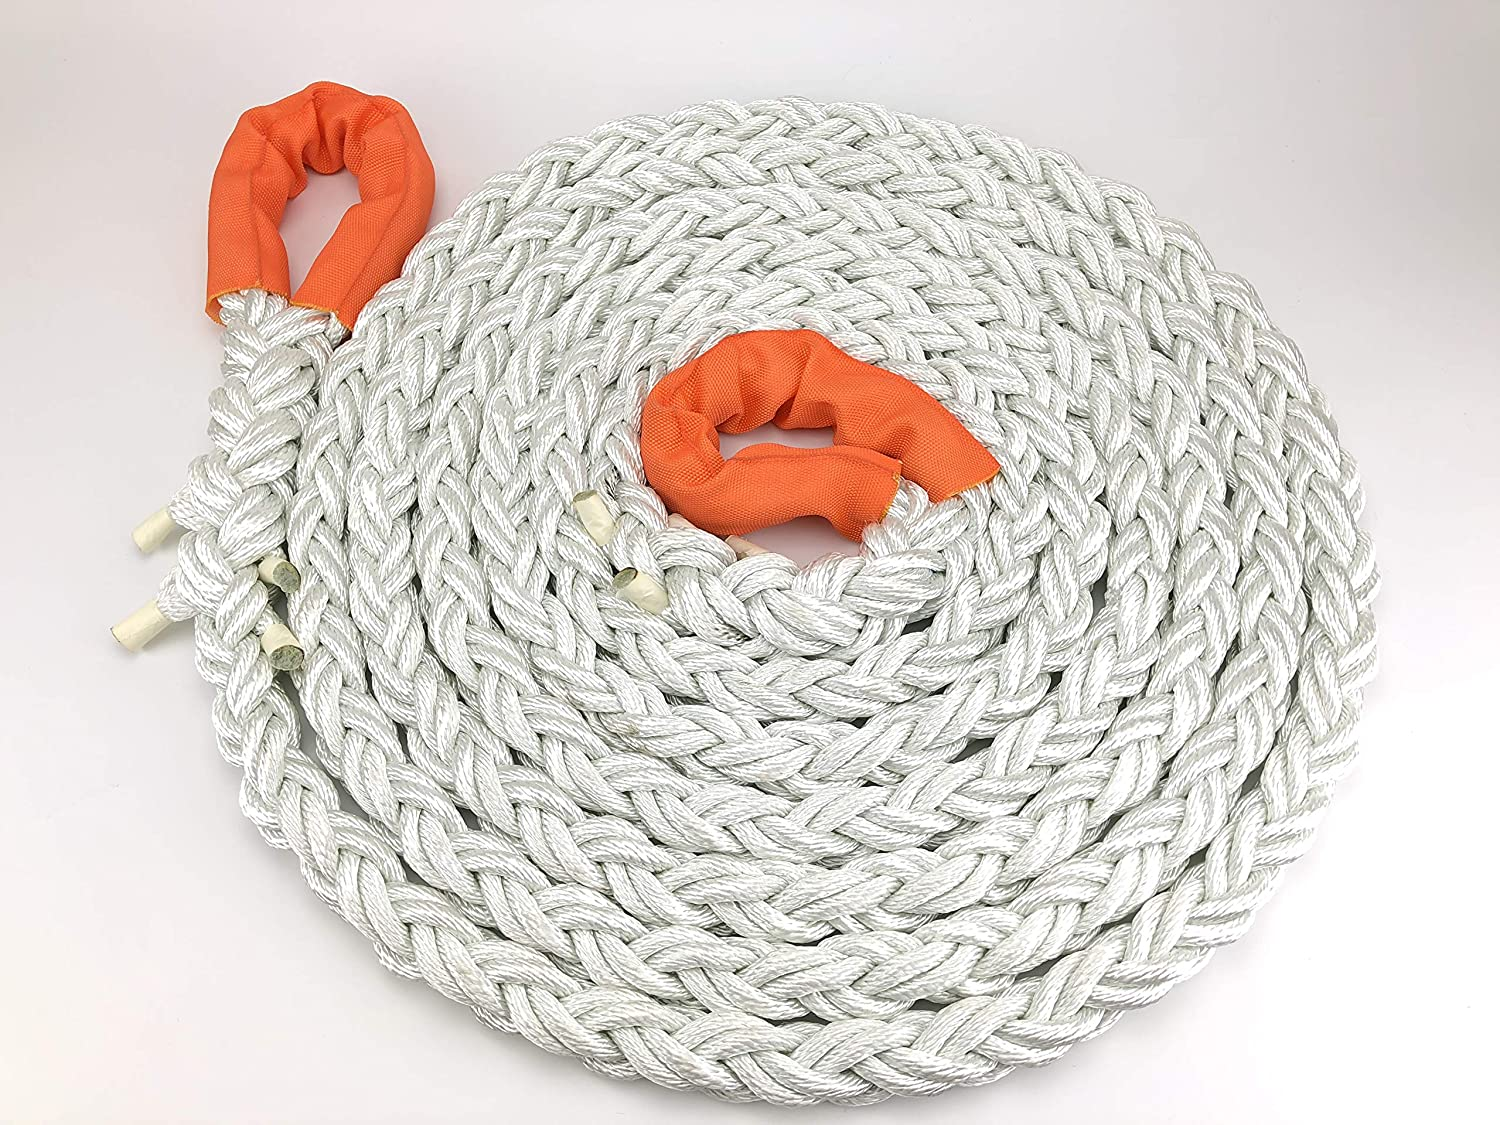 RopeServices UK 4X4 And Off Road Kinetic Recovery Tow Ropes 24mm X 8 Metres